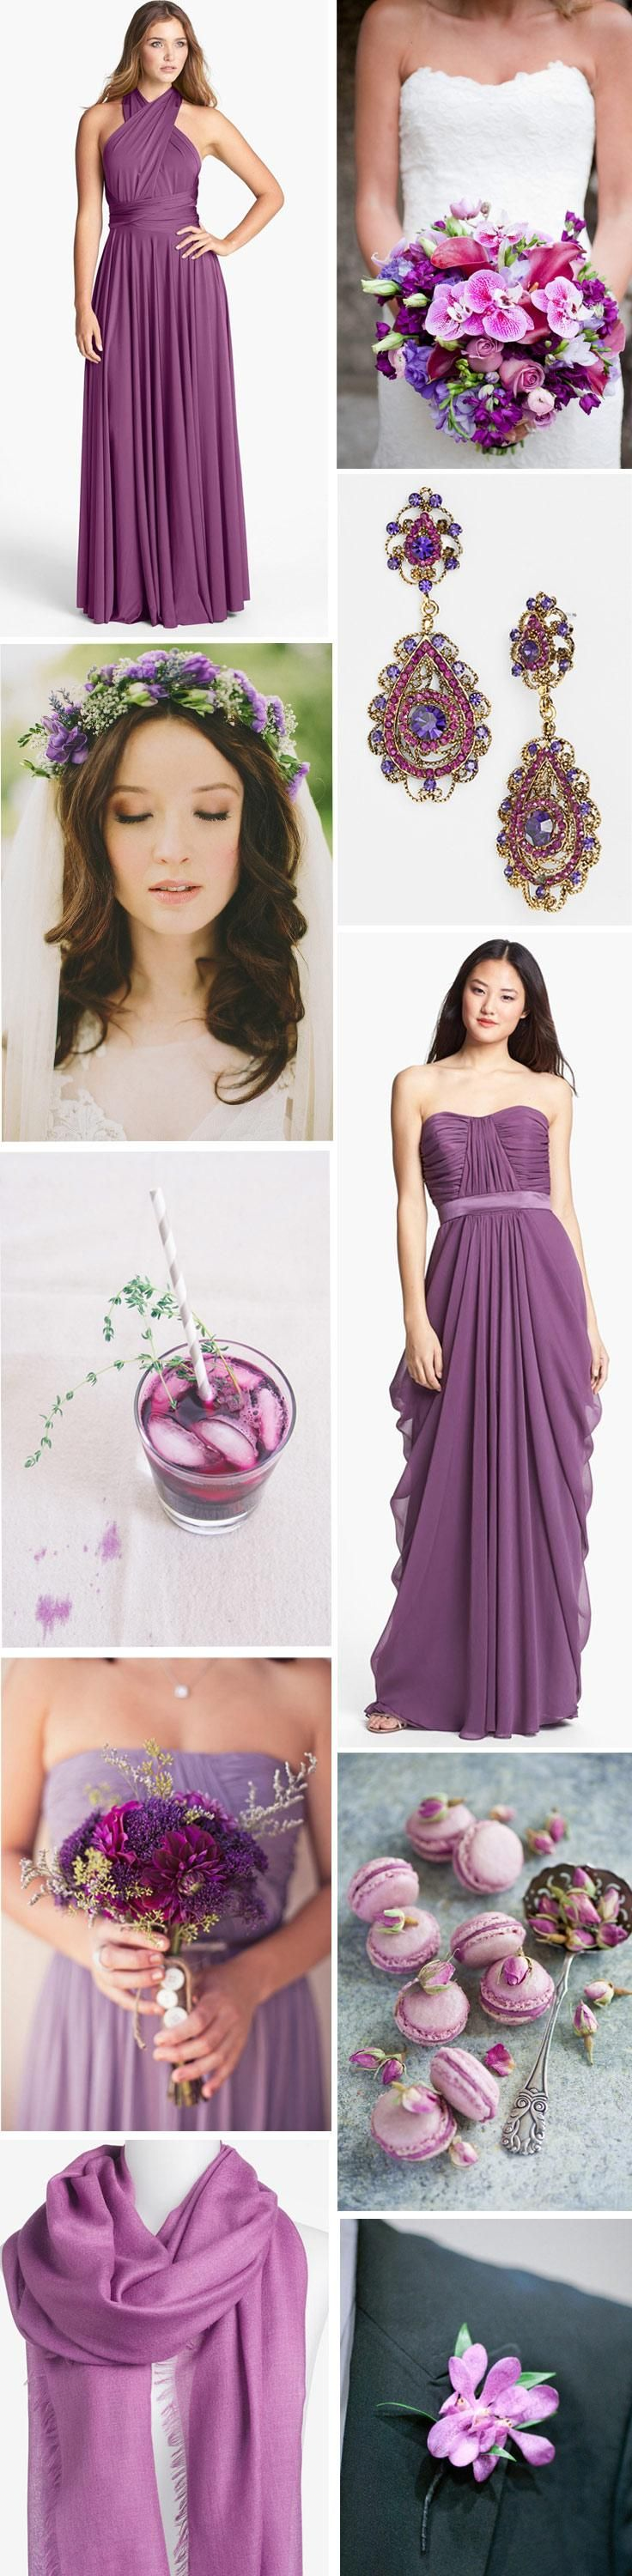 Wedding ideas in the Color of the Year 2014: Radiant Orchid